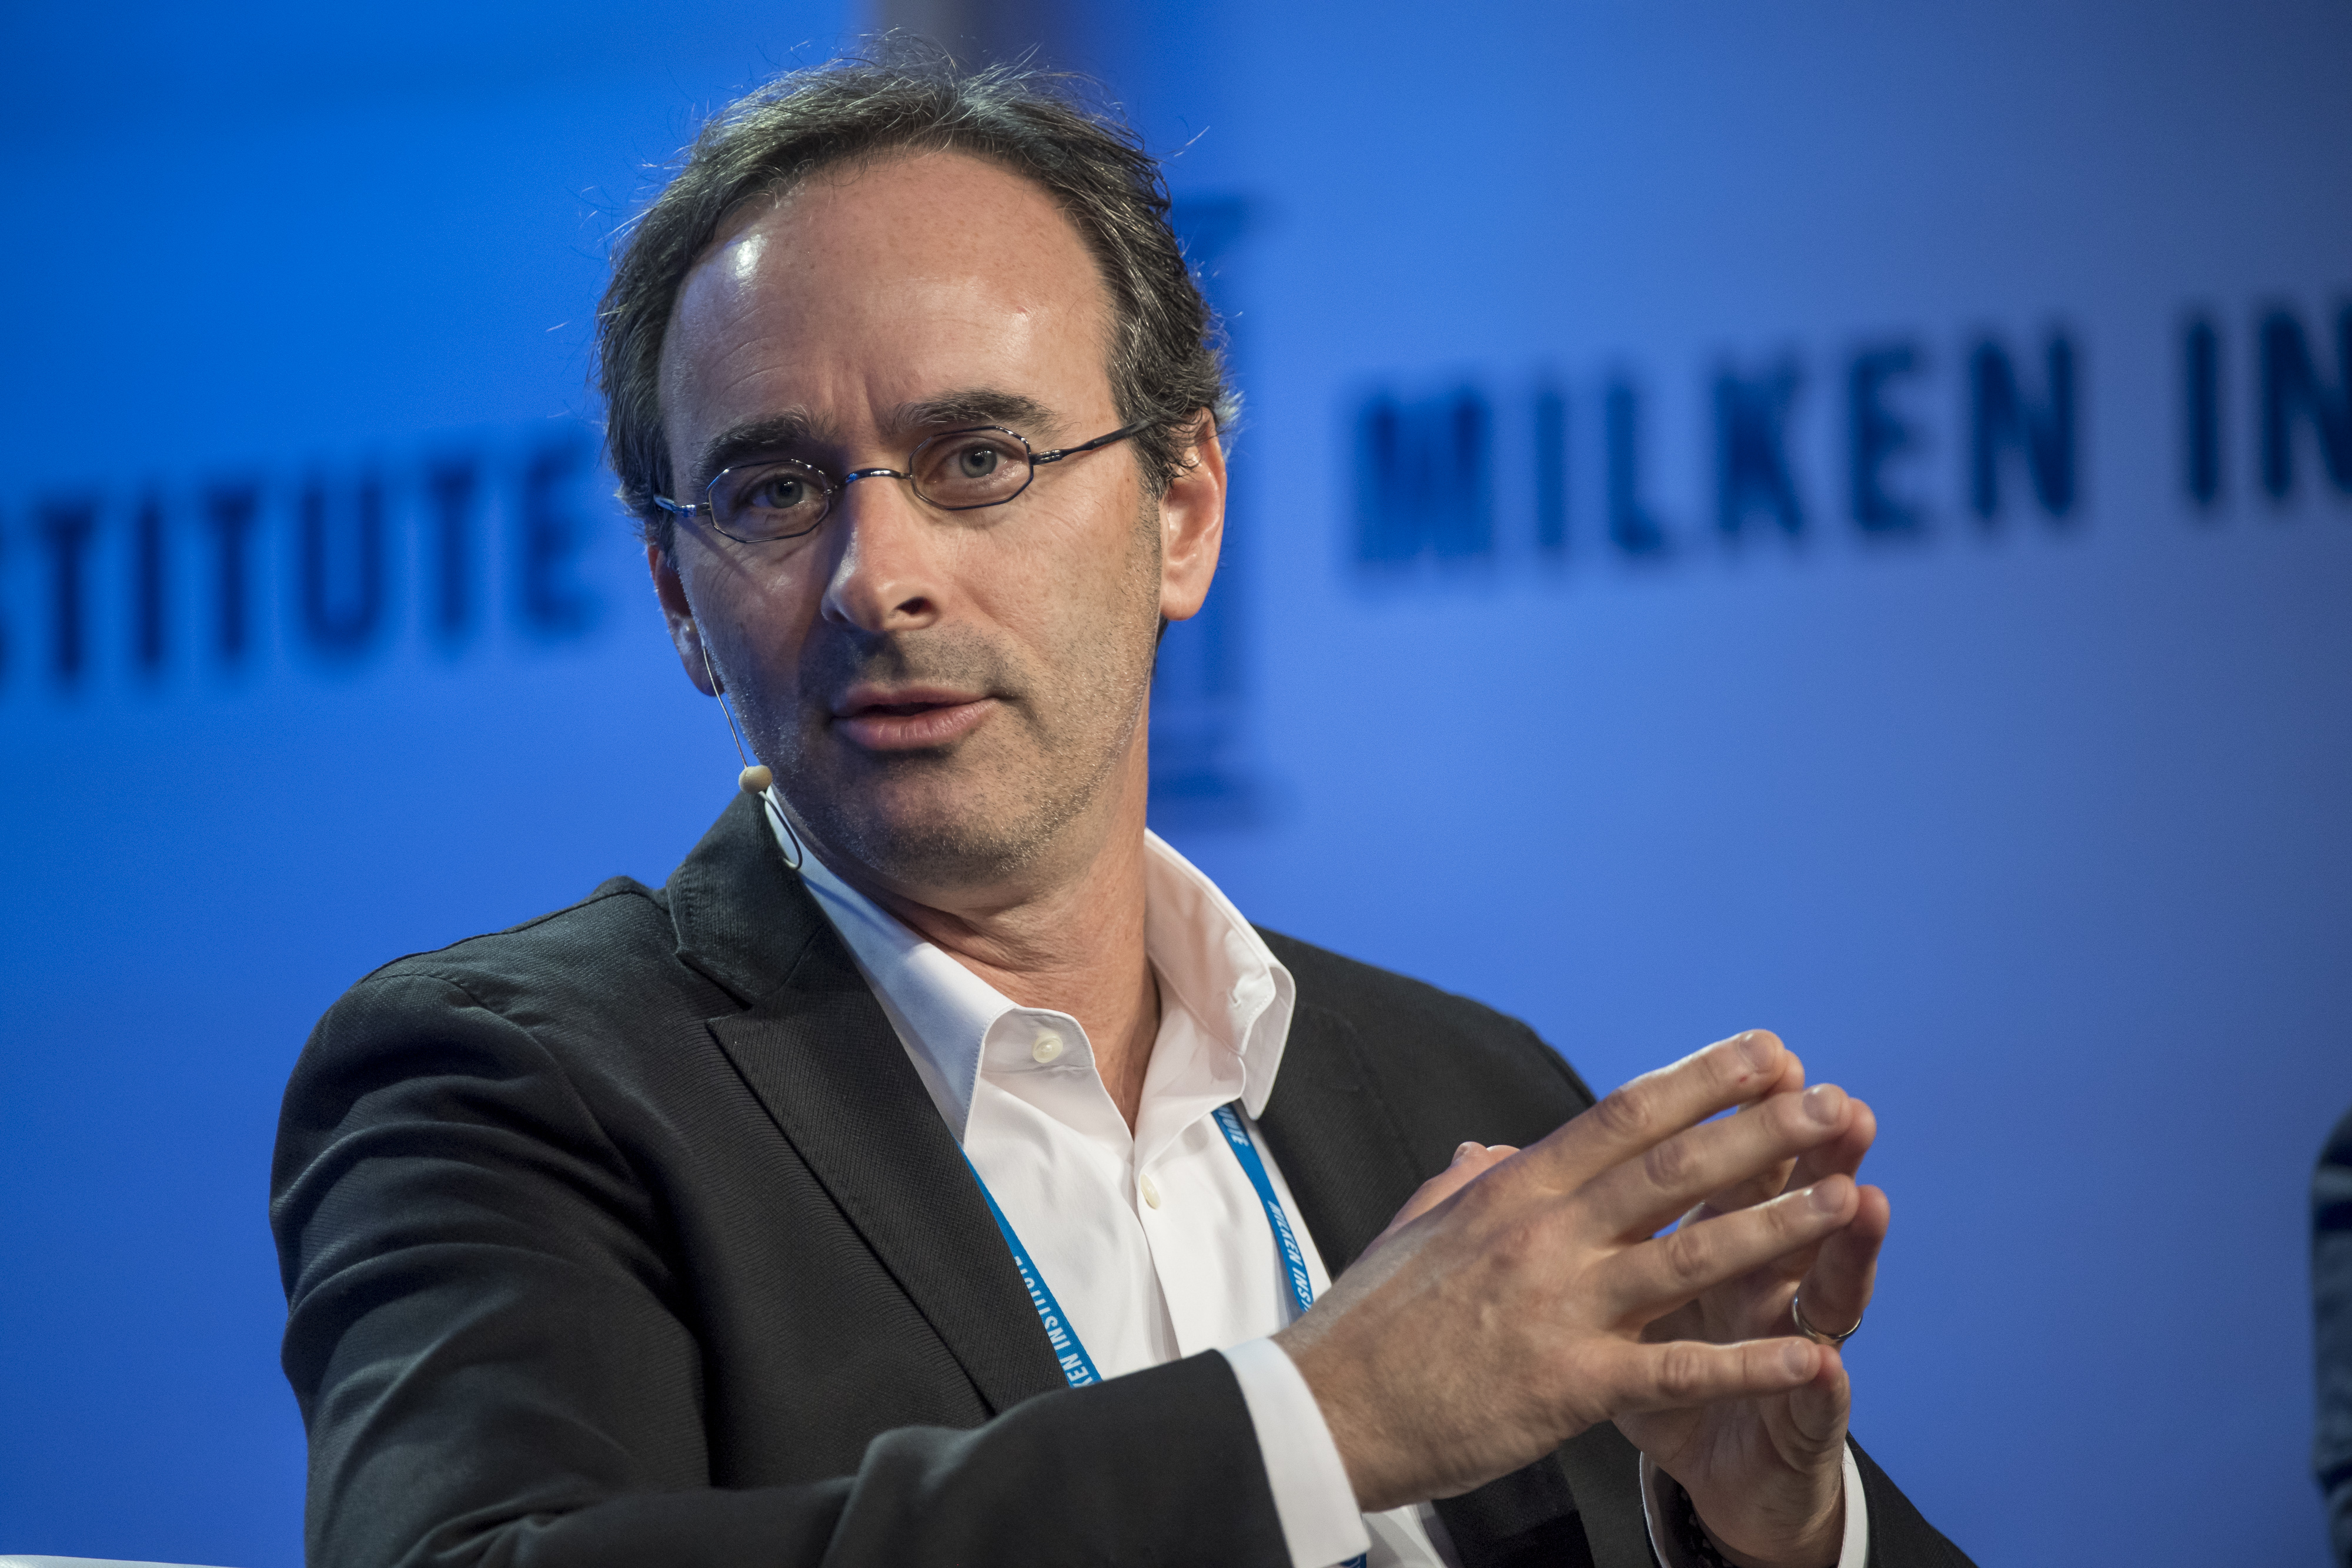 Groupon's billionaire cofounder Eric Lefkofsky just raised $70 million for his new company